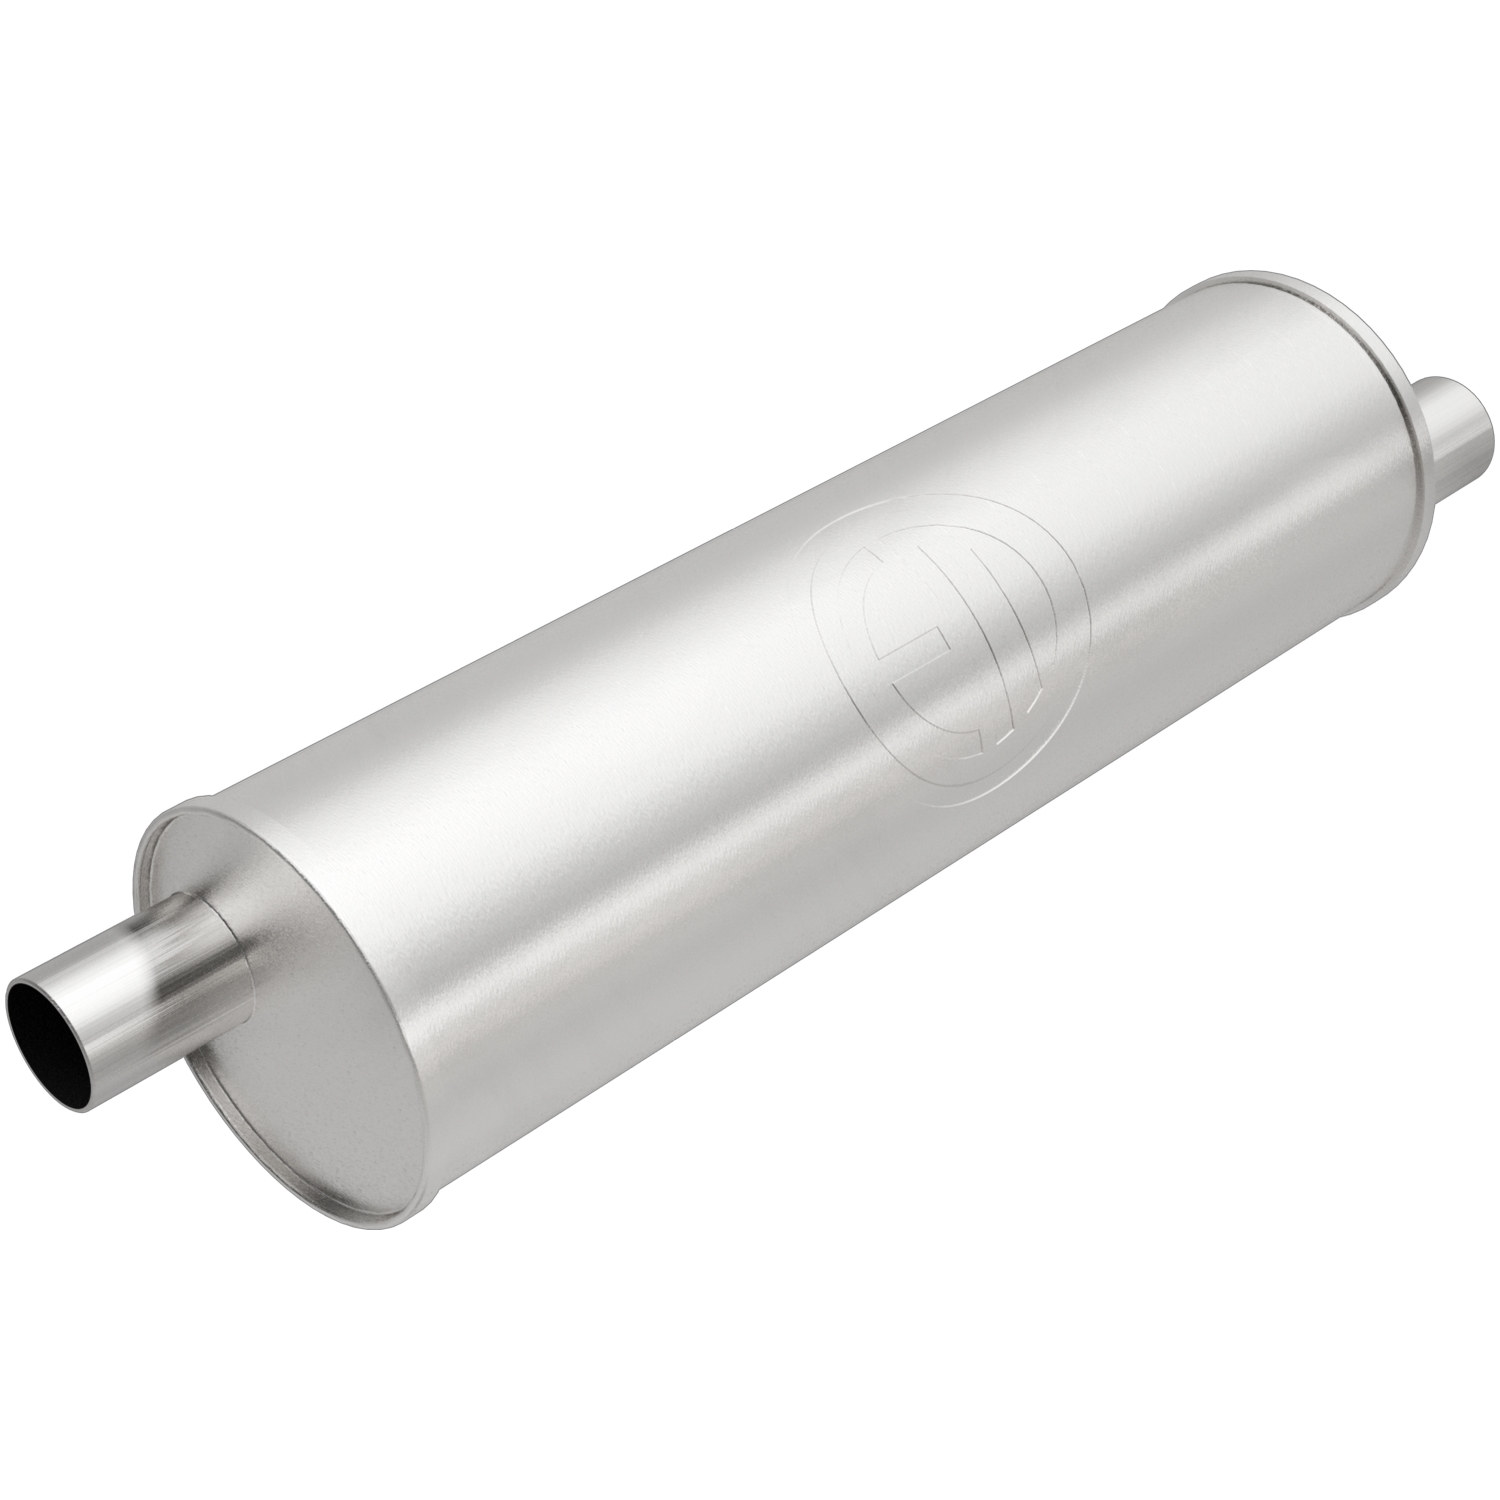 100-1785 Bosal USA Exhaust Muffler Aluminized Steel Case